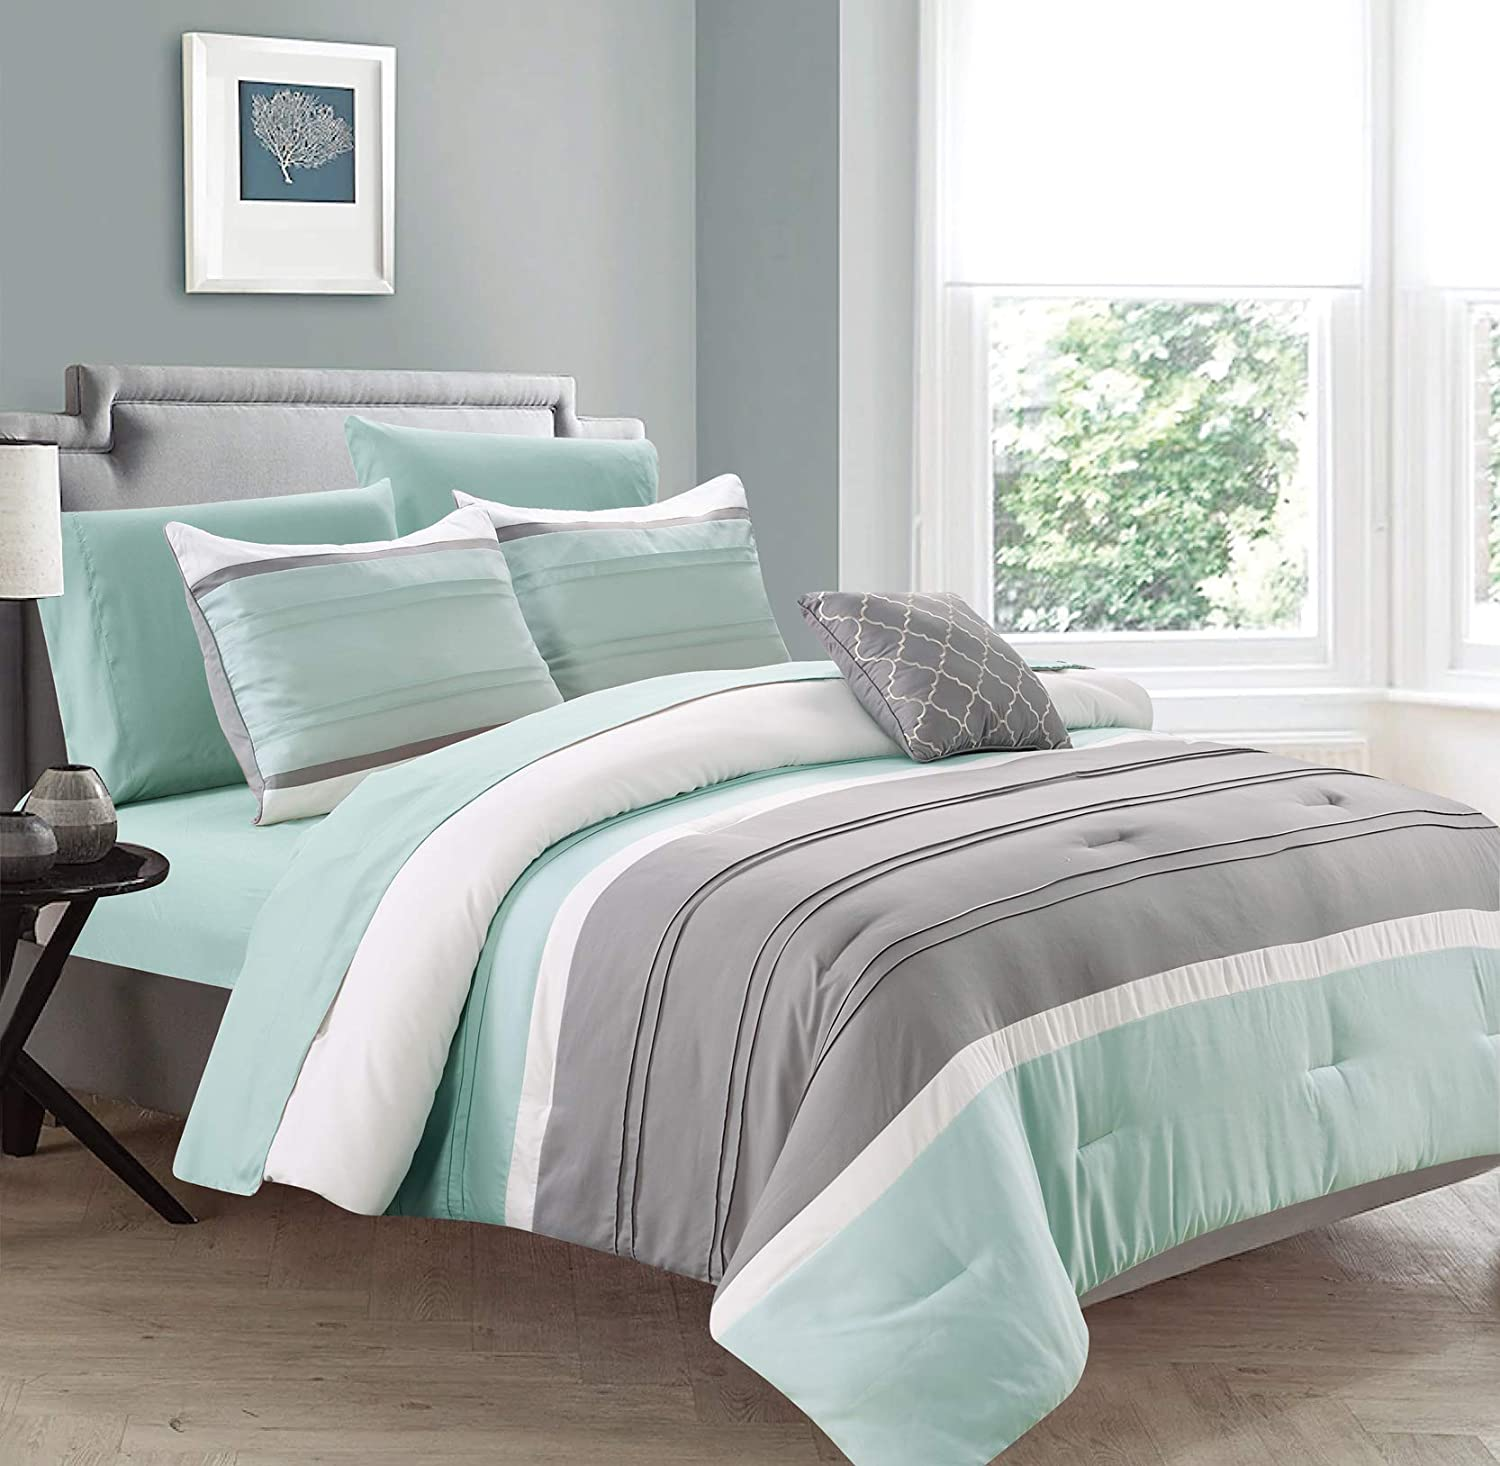 Sweet Home Collection Comforter 8 Piece Decorative Printed Soft and Luxurious Bedding with Sheet Set, Shams, and Decorative Pillow Queen New Haven-Mint